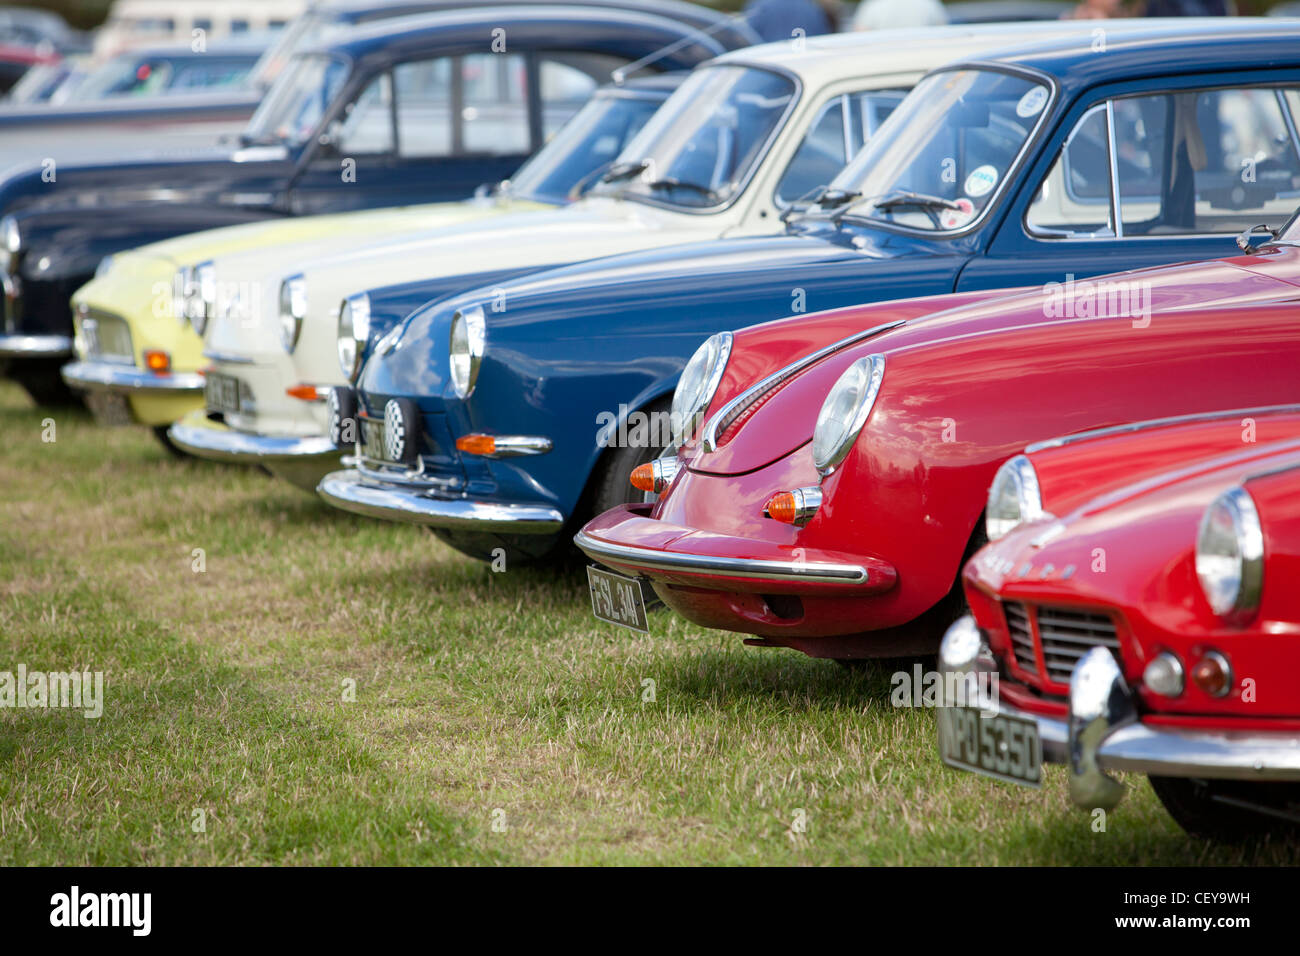 S series of classic cars parked at Goodwood revival - Stock Image